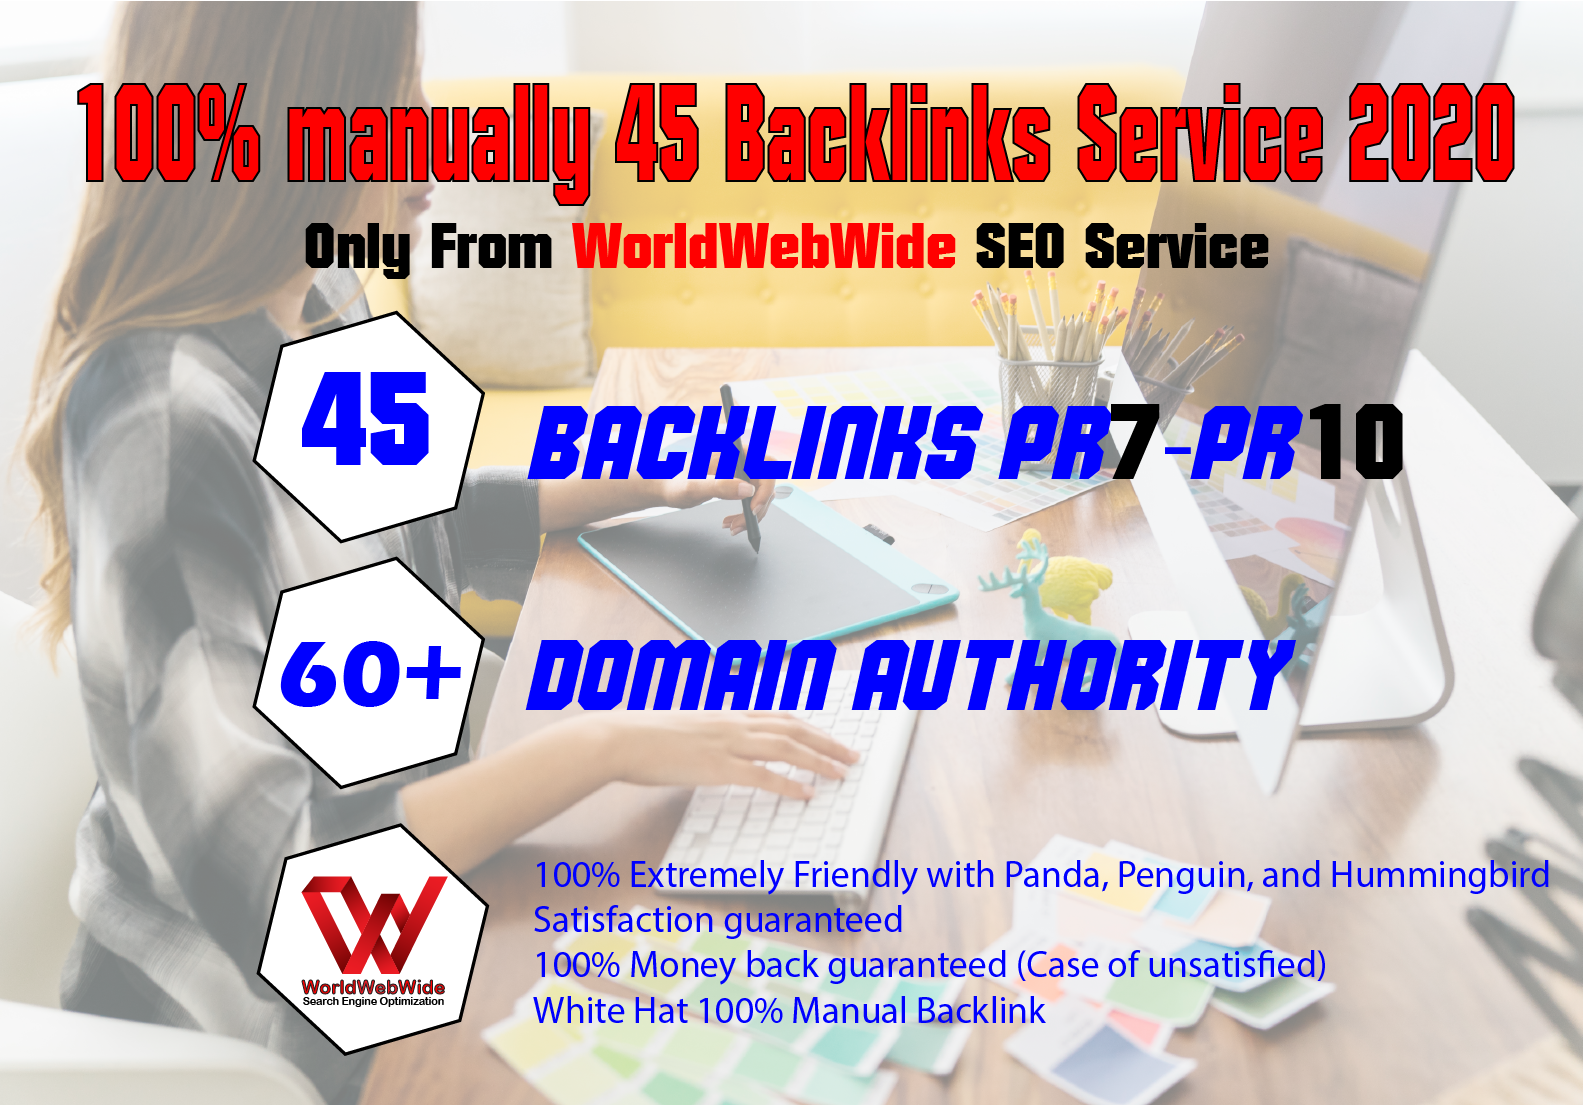 Create 45+ PR10 to PR7 Safe SEO Backlinks High Authority Site to Boost Your Google Ranking